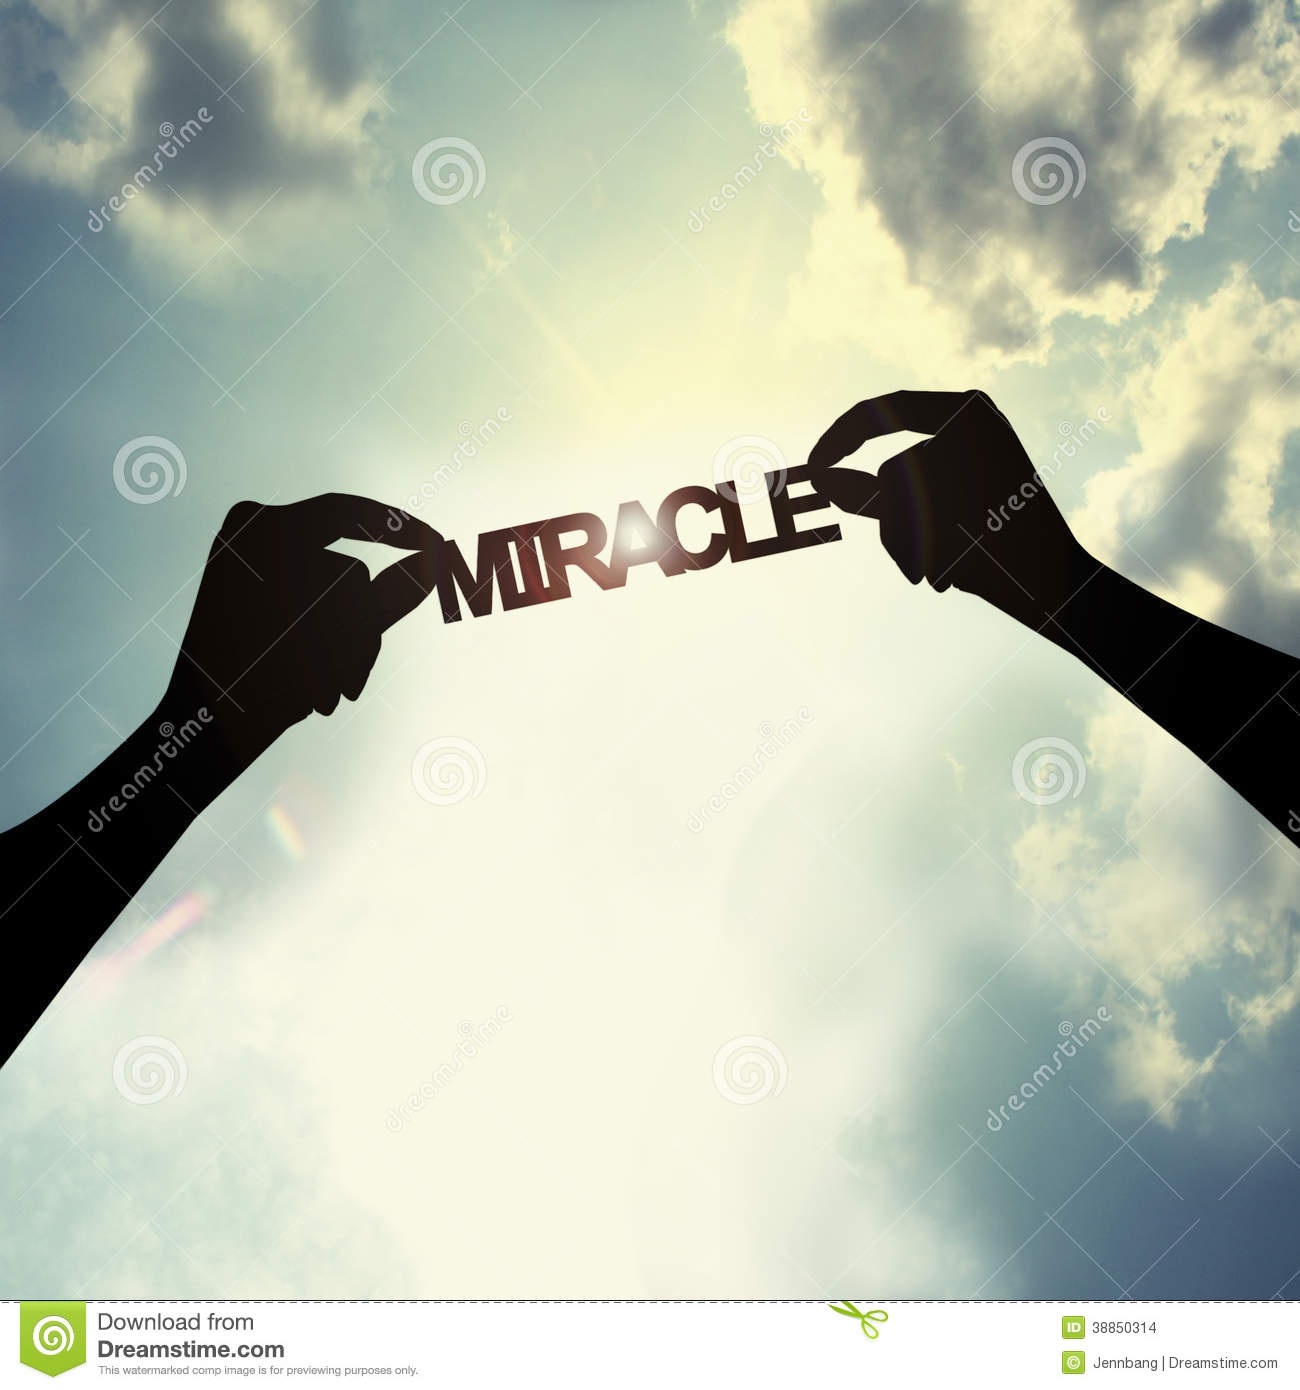 Wishing A Miracle Stock Photo Image Of Abstract Hope